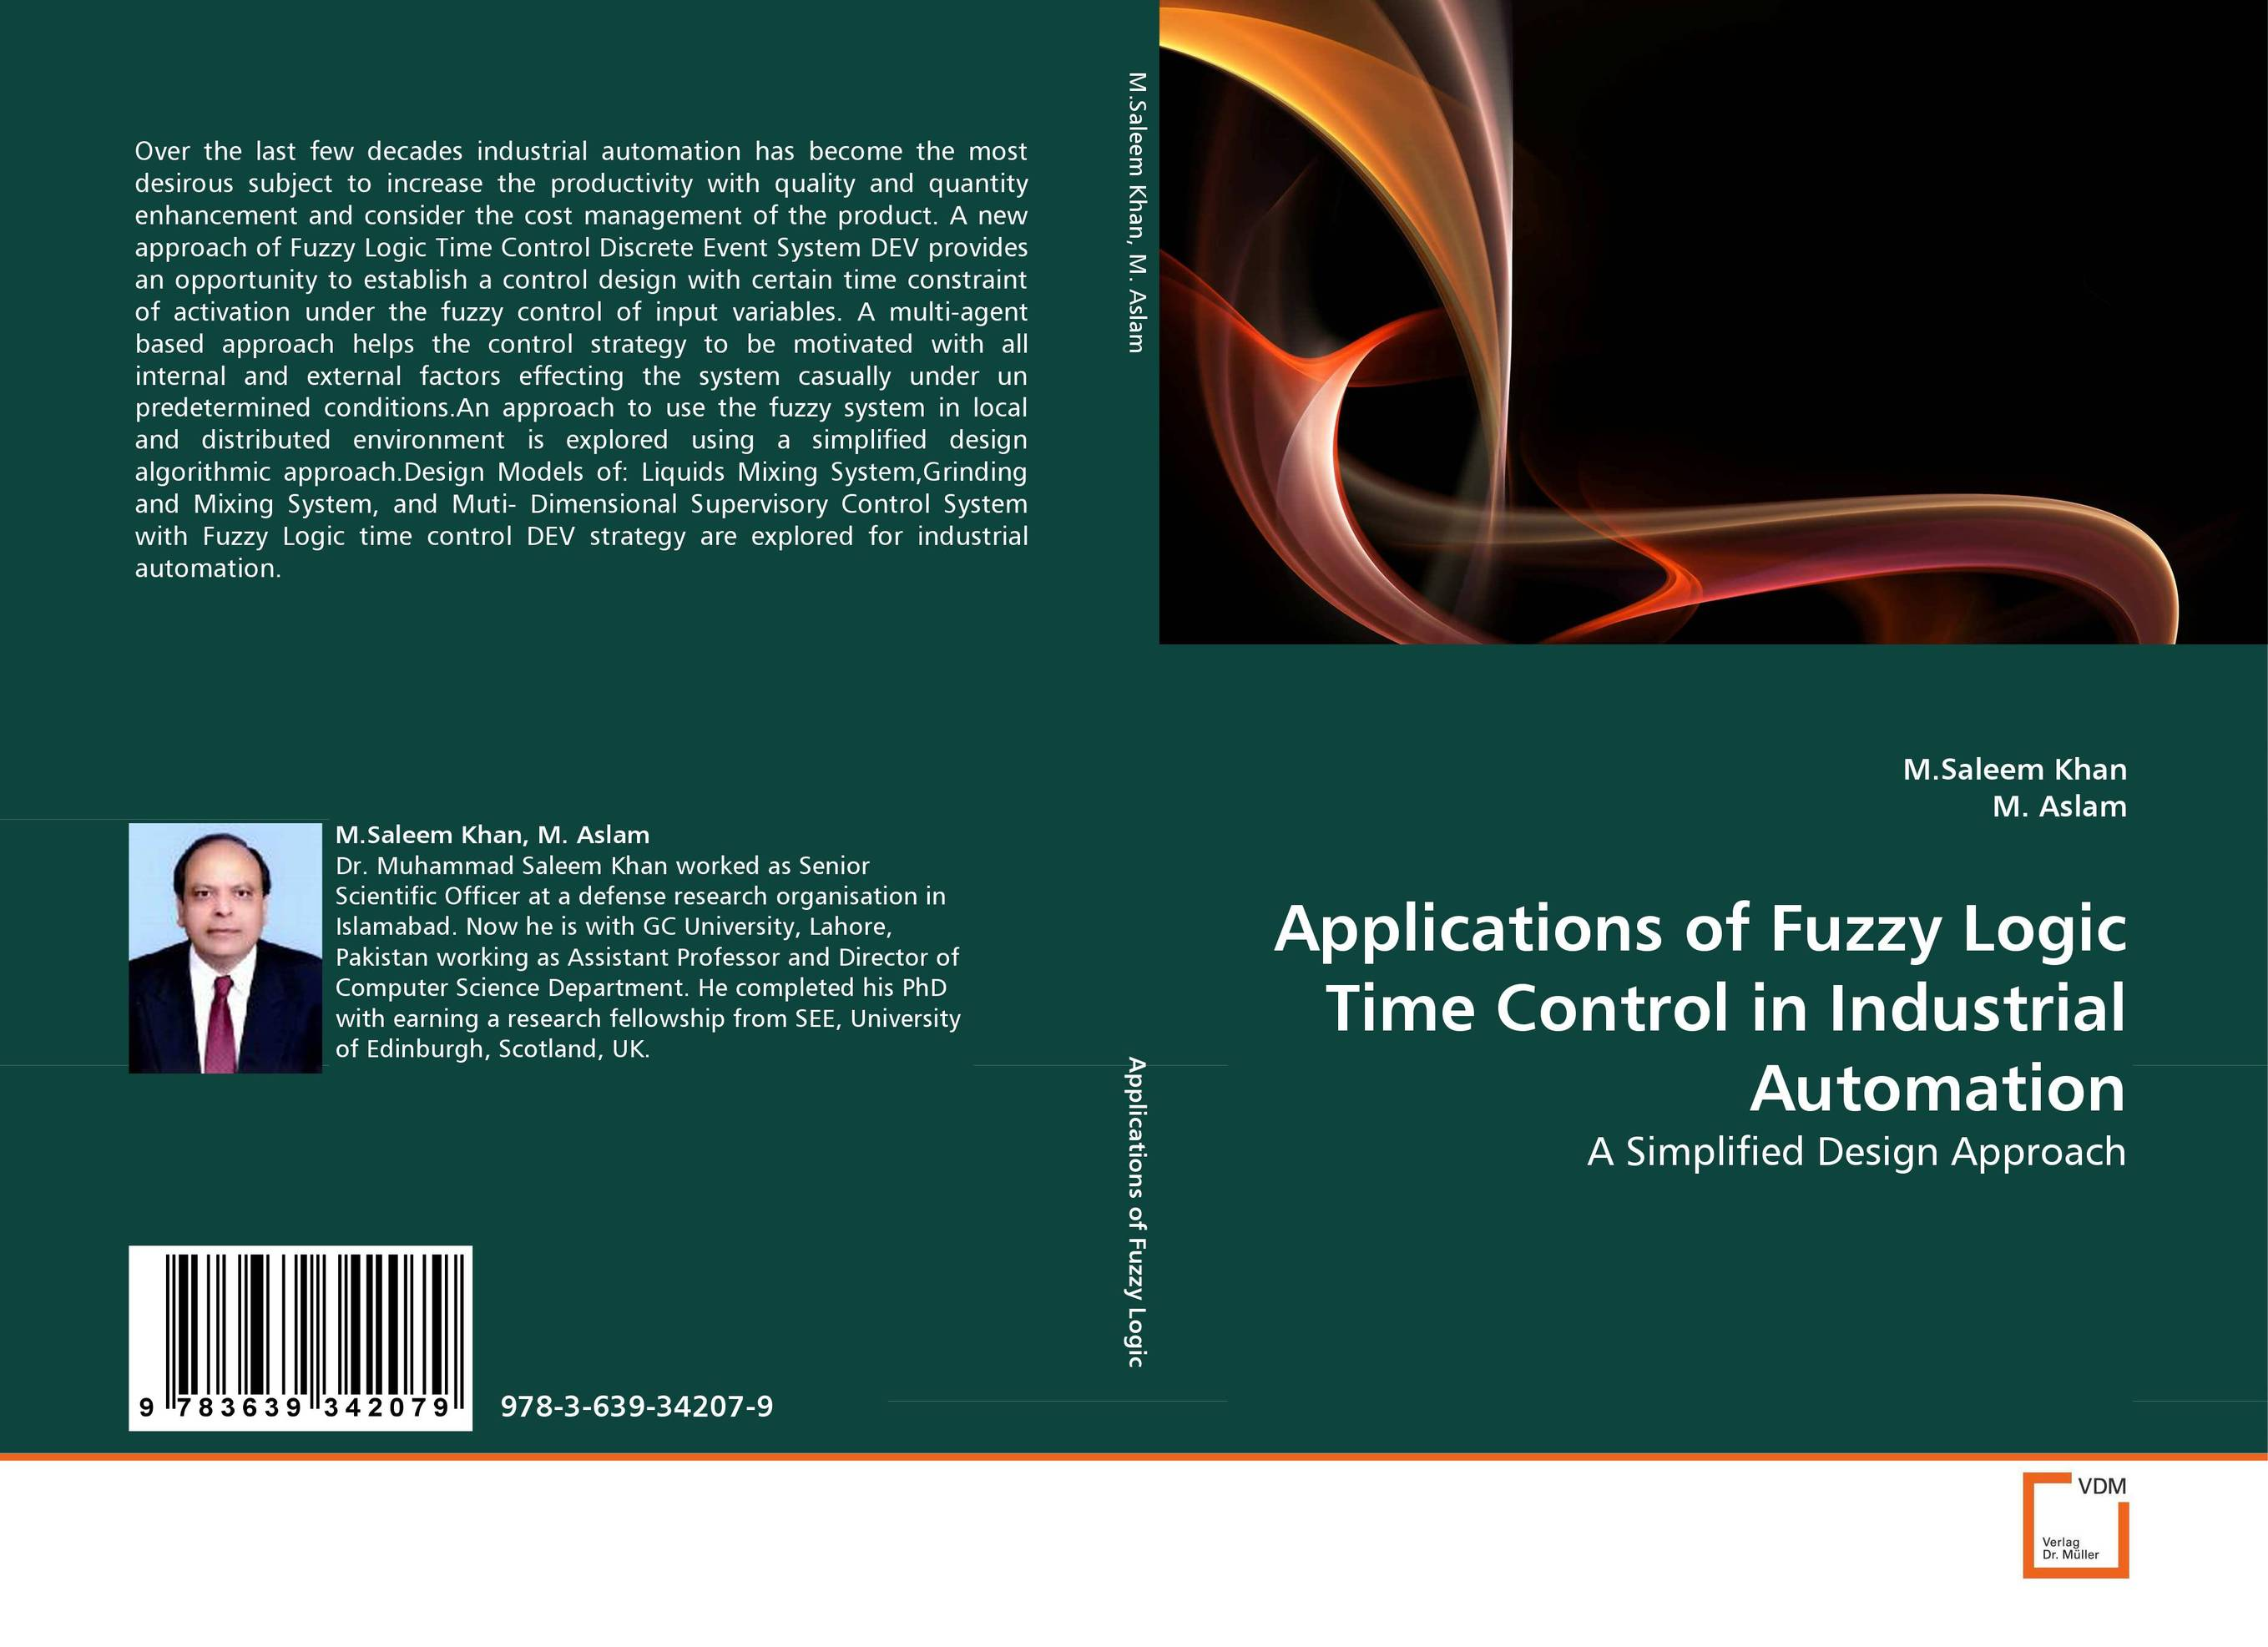 Applications of Fuzzy Logic Time Control in Industrial Automation fuzzy logic control of continuous stirred tank reactor cstr